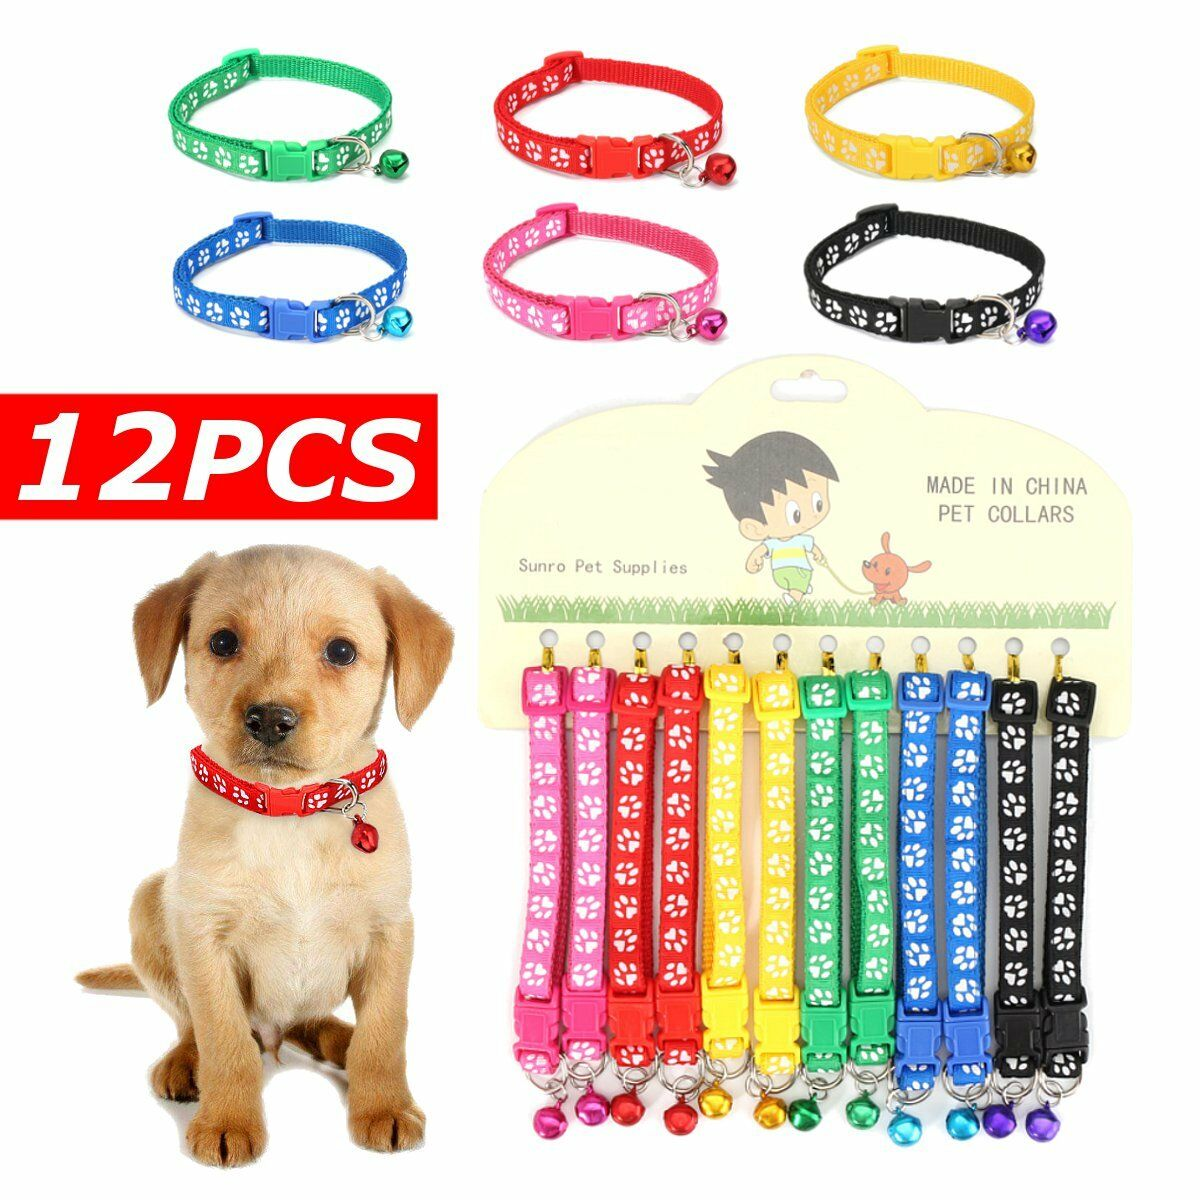 12PCS/Lot Dog Collars Pet Cat Nylon Collar with Bell Necklace Buckle